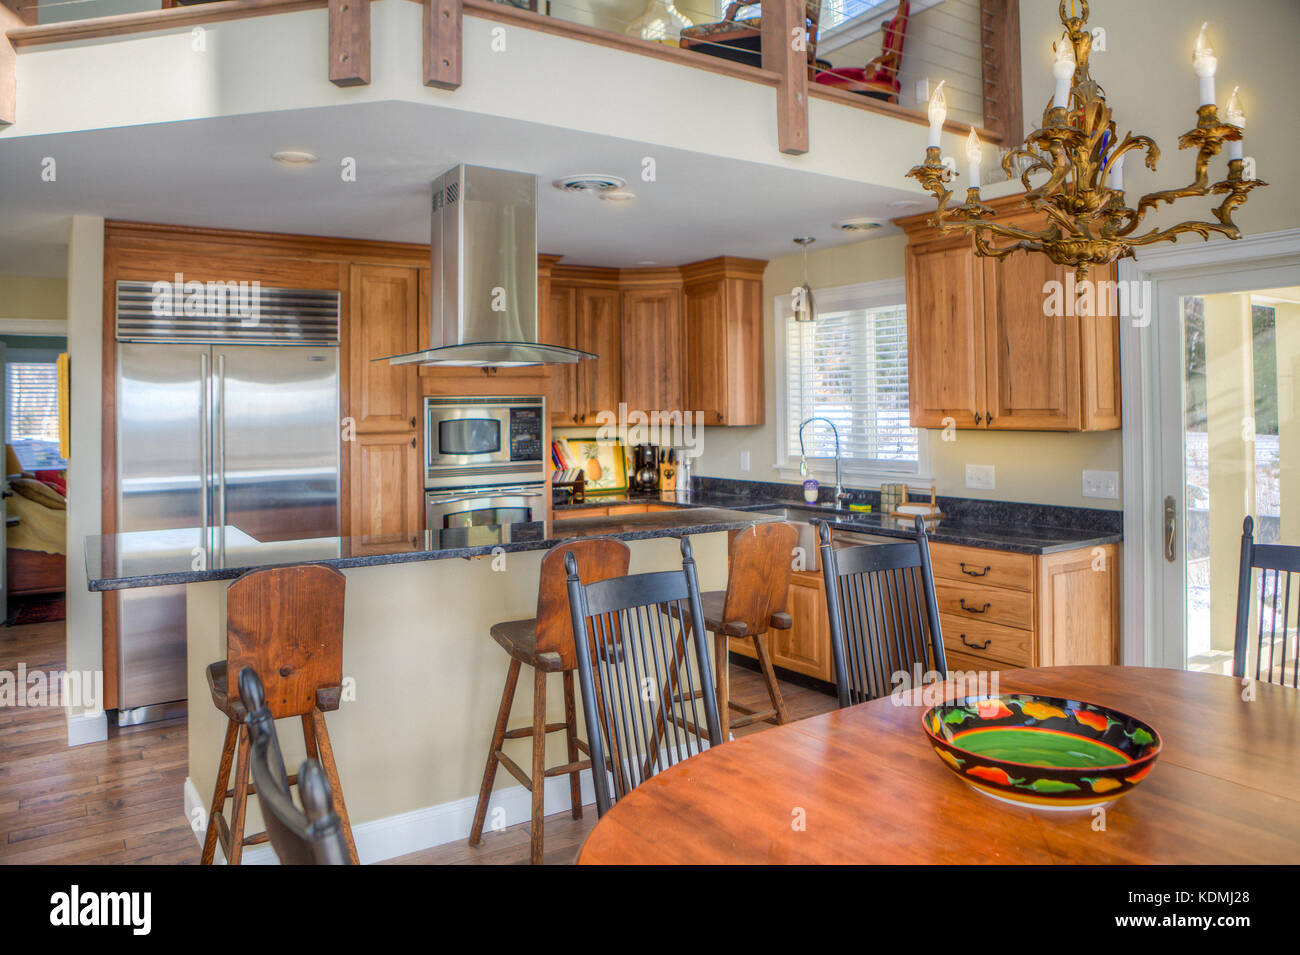 Stainless Steel Appliances In A Modern, Upscale Kitchen In Vermont, USA.